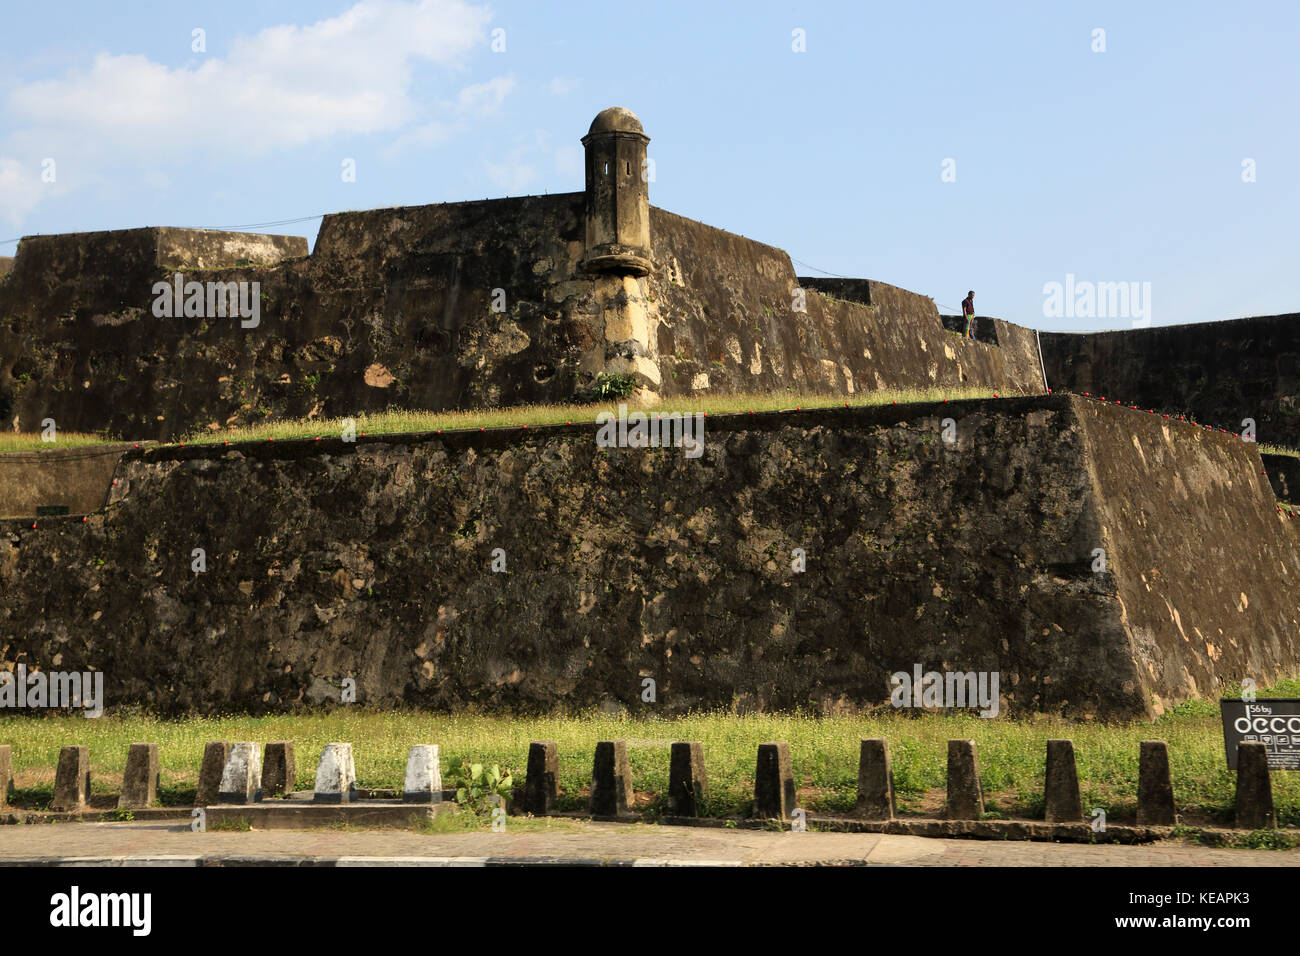 Galle Sri Lanka Galle Fort Moon Bastion - Stock Image